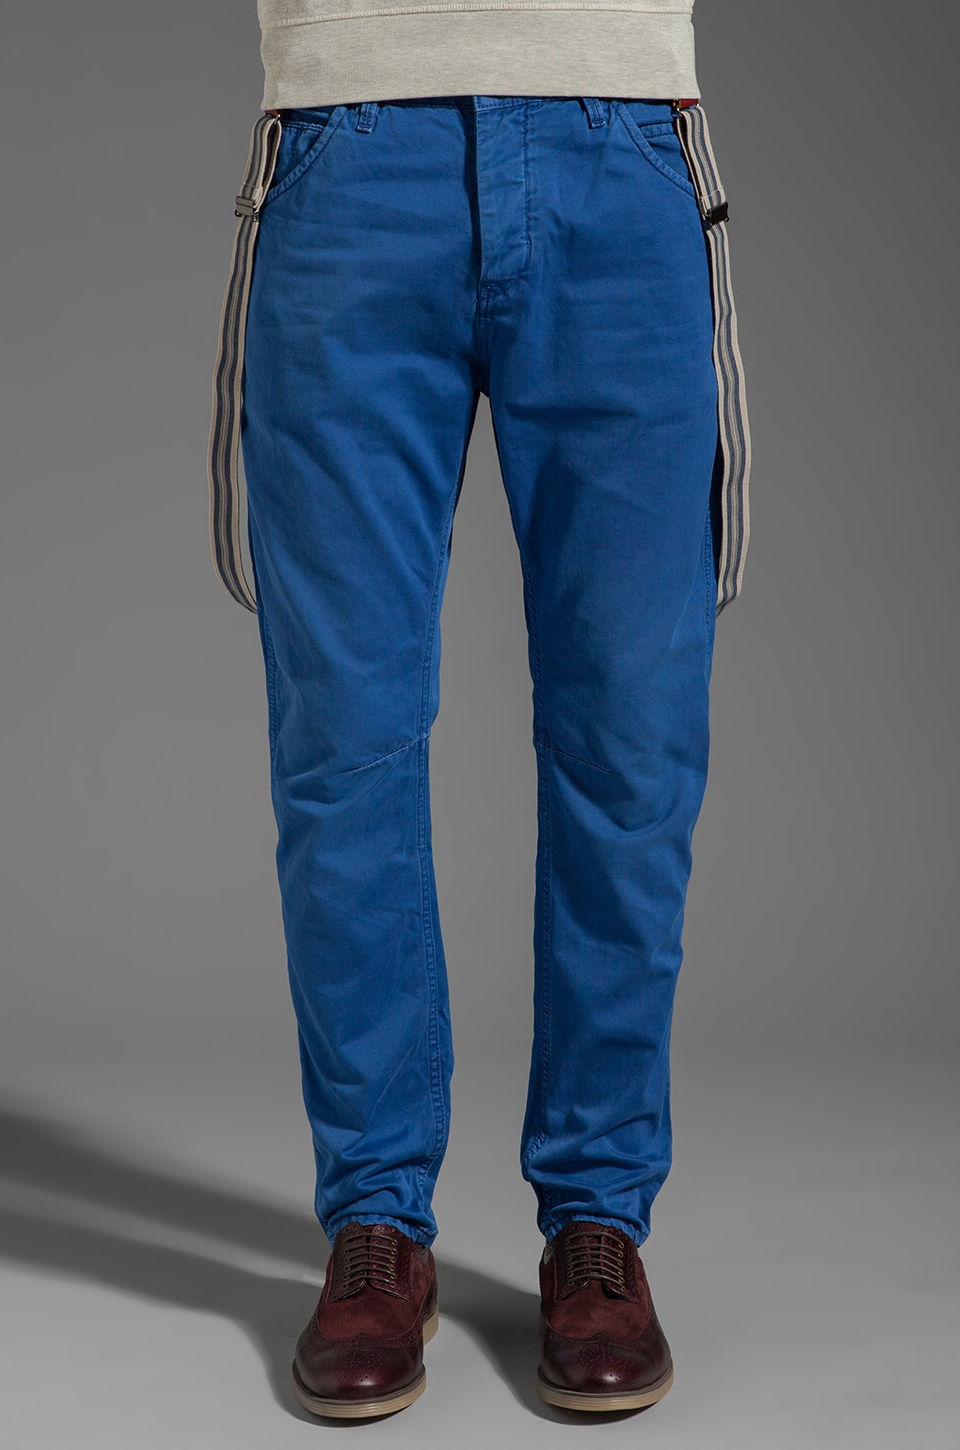 Scotch & Soda Brewer Antifit Twill Pant w/Suspenders in Memory Blue